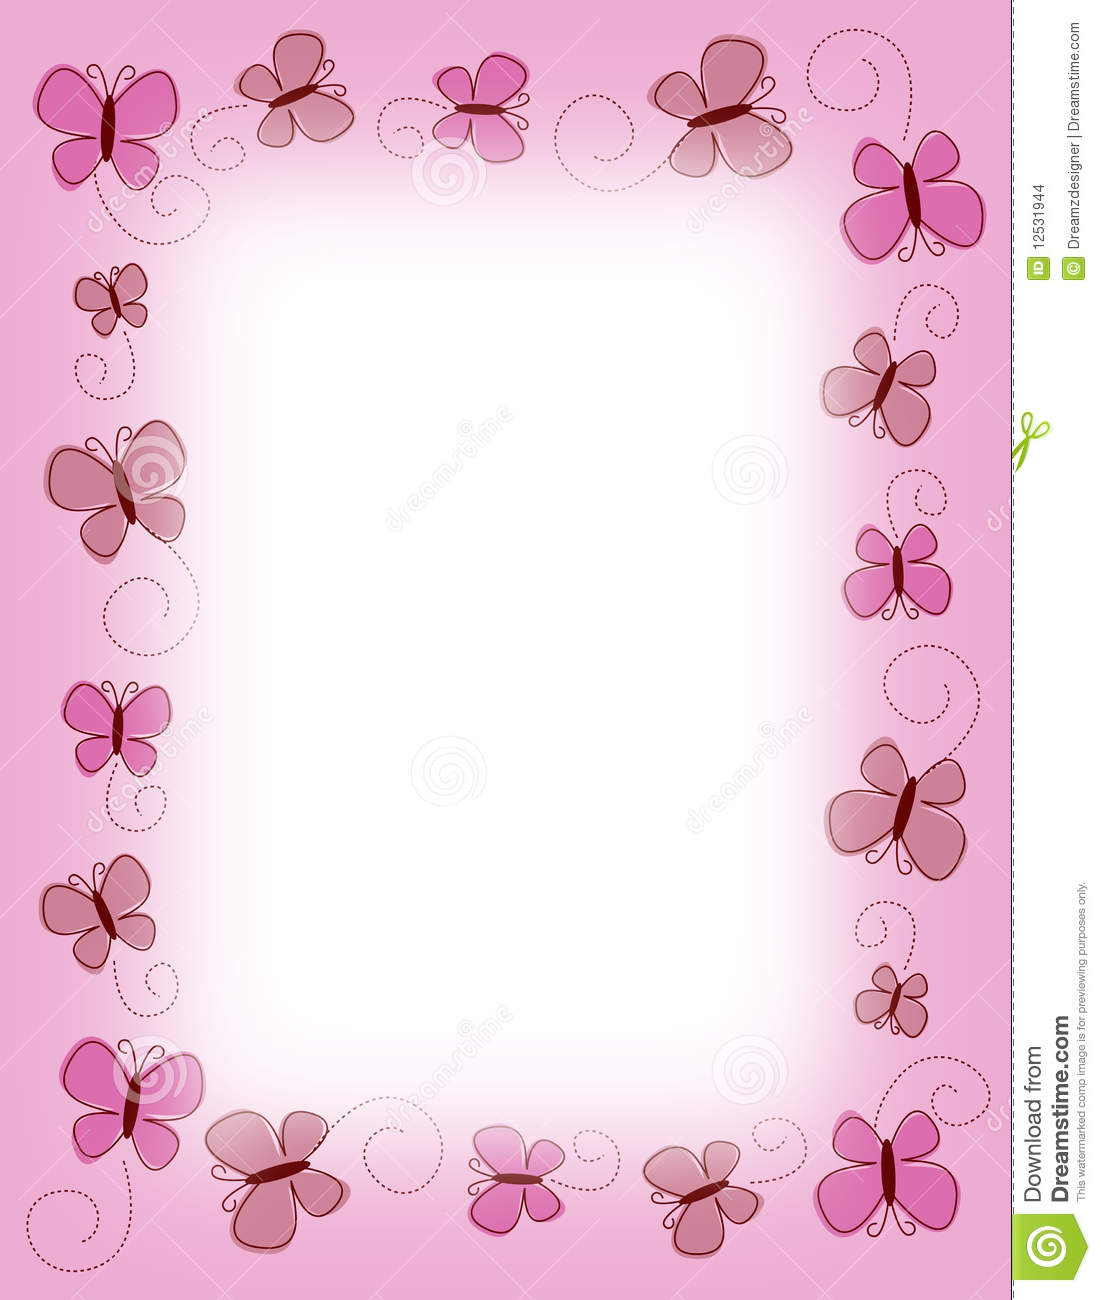 Cute Bordered Pastel Flower Wallpaper Border Pink Butterfly Butterflies Stock Images Image